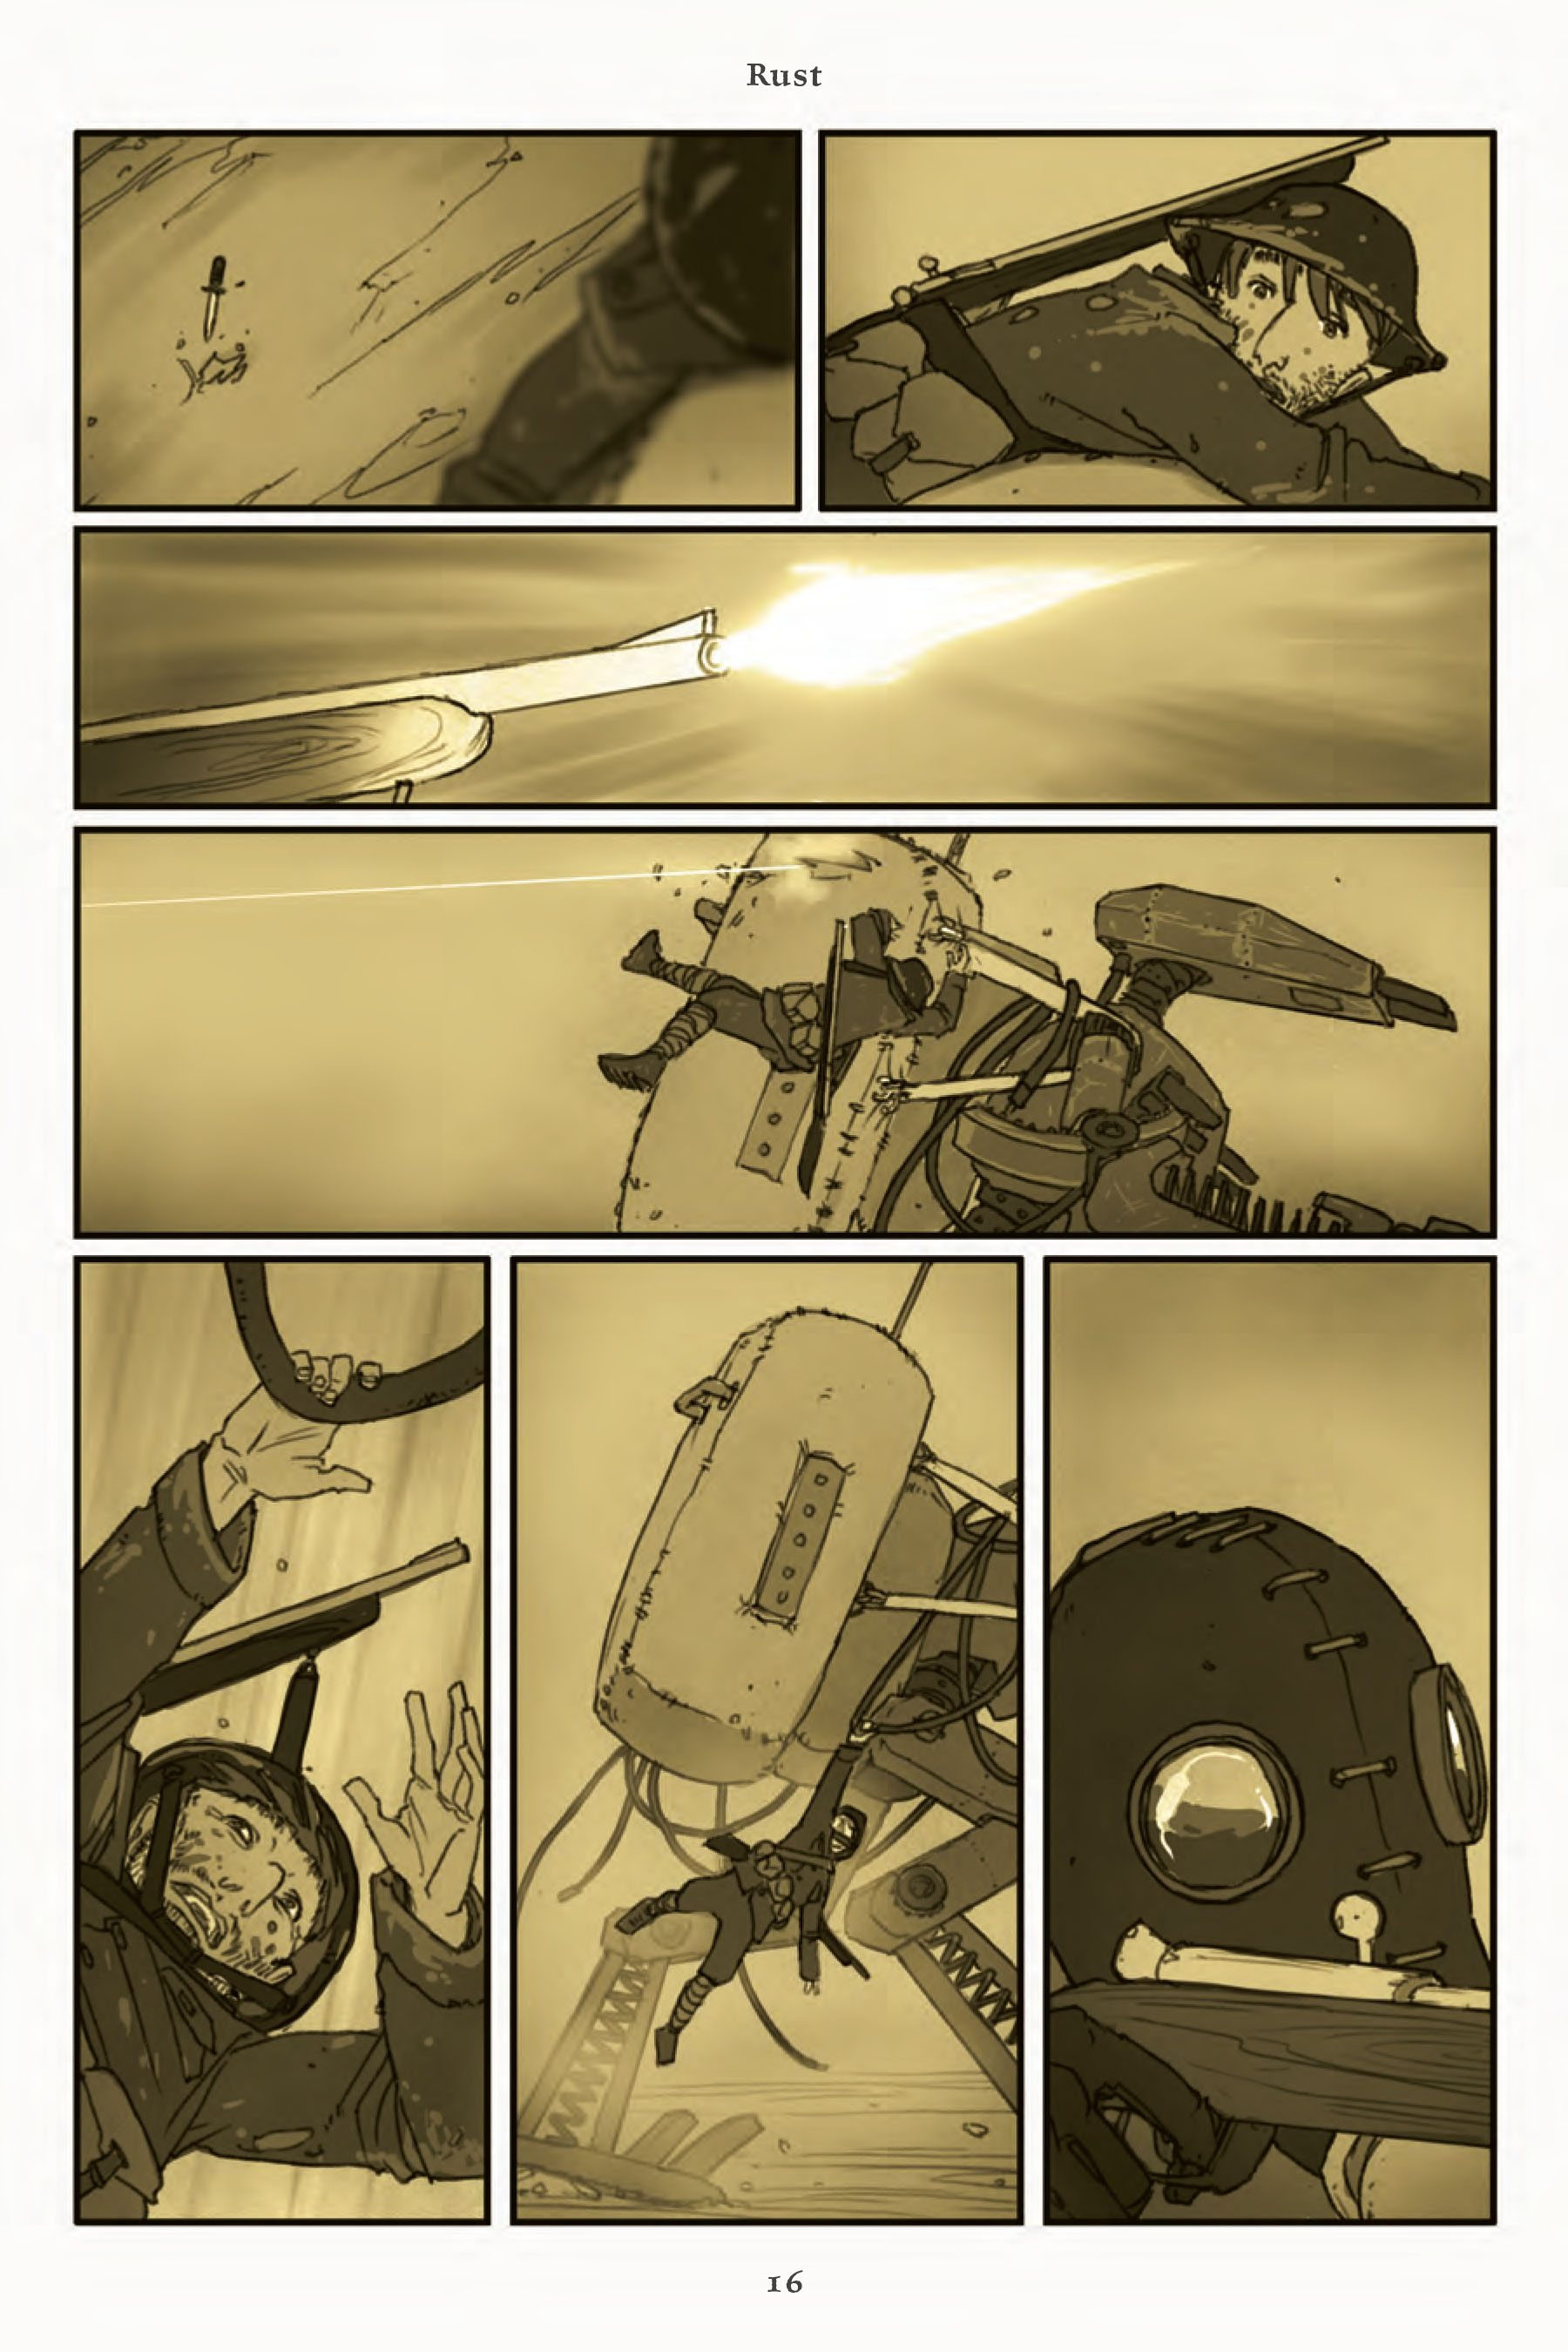 Rust_The_Boy_Soldier_TP_Page_16